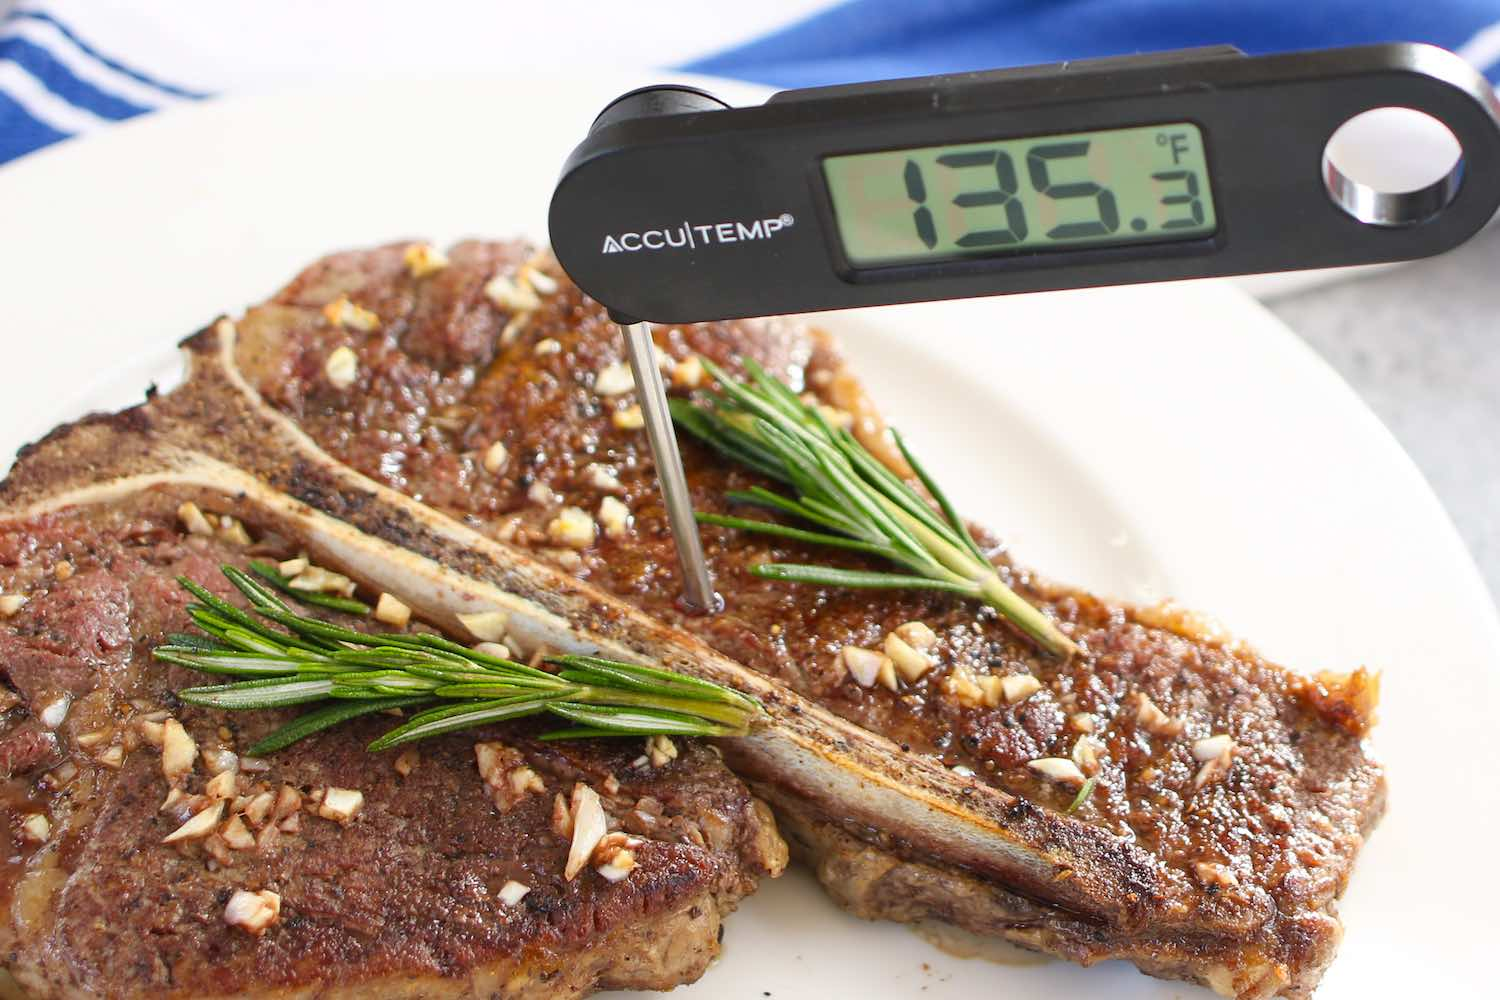 Check steak doneness is by inserting an instant-read thermometer into the middle of the steak